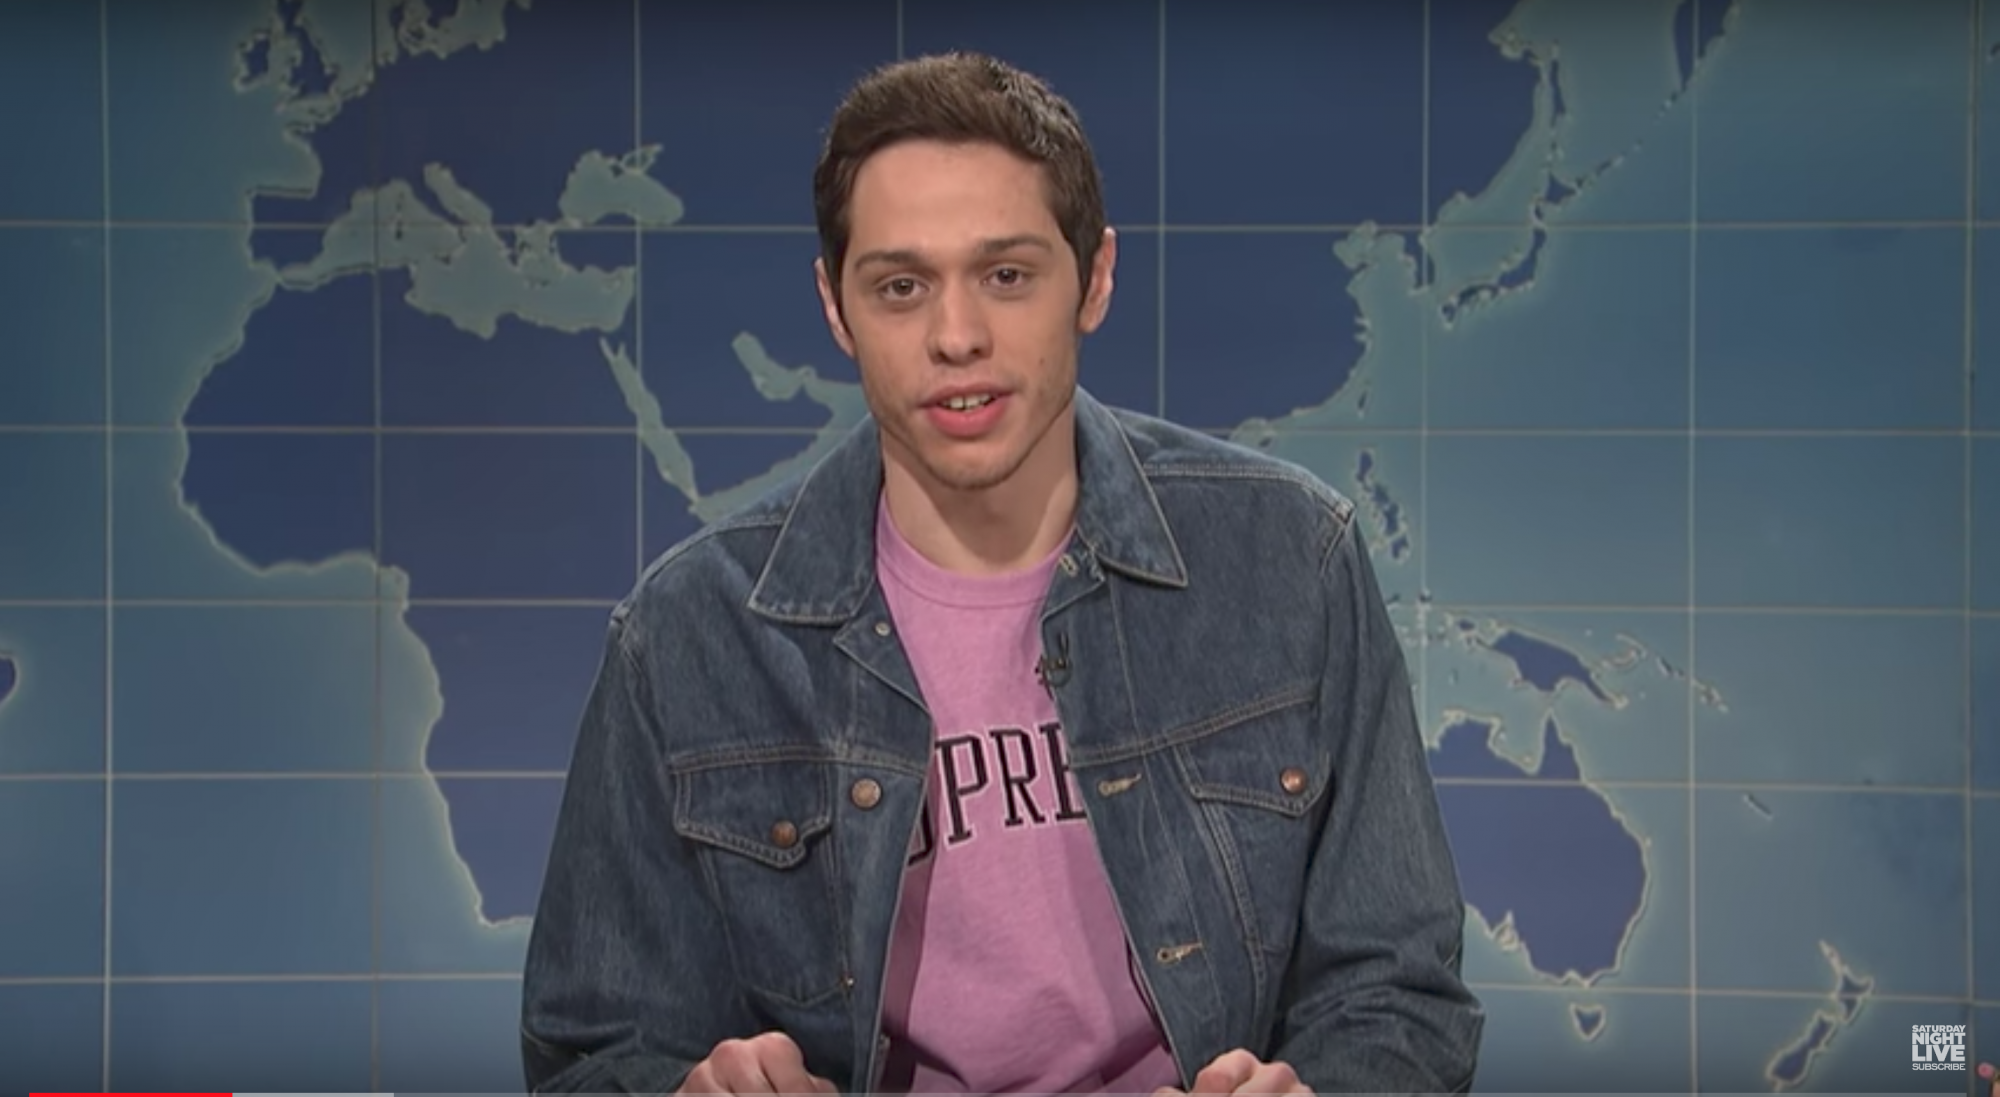 Pete Davidson on Weekend Update on SNL